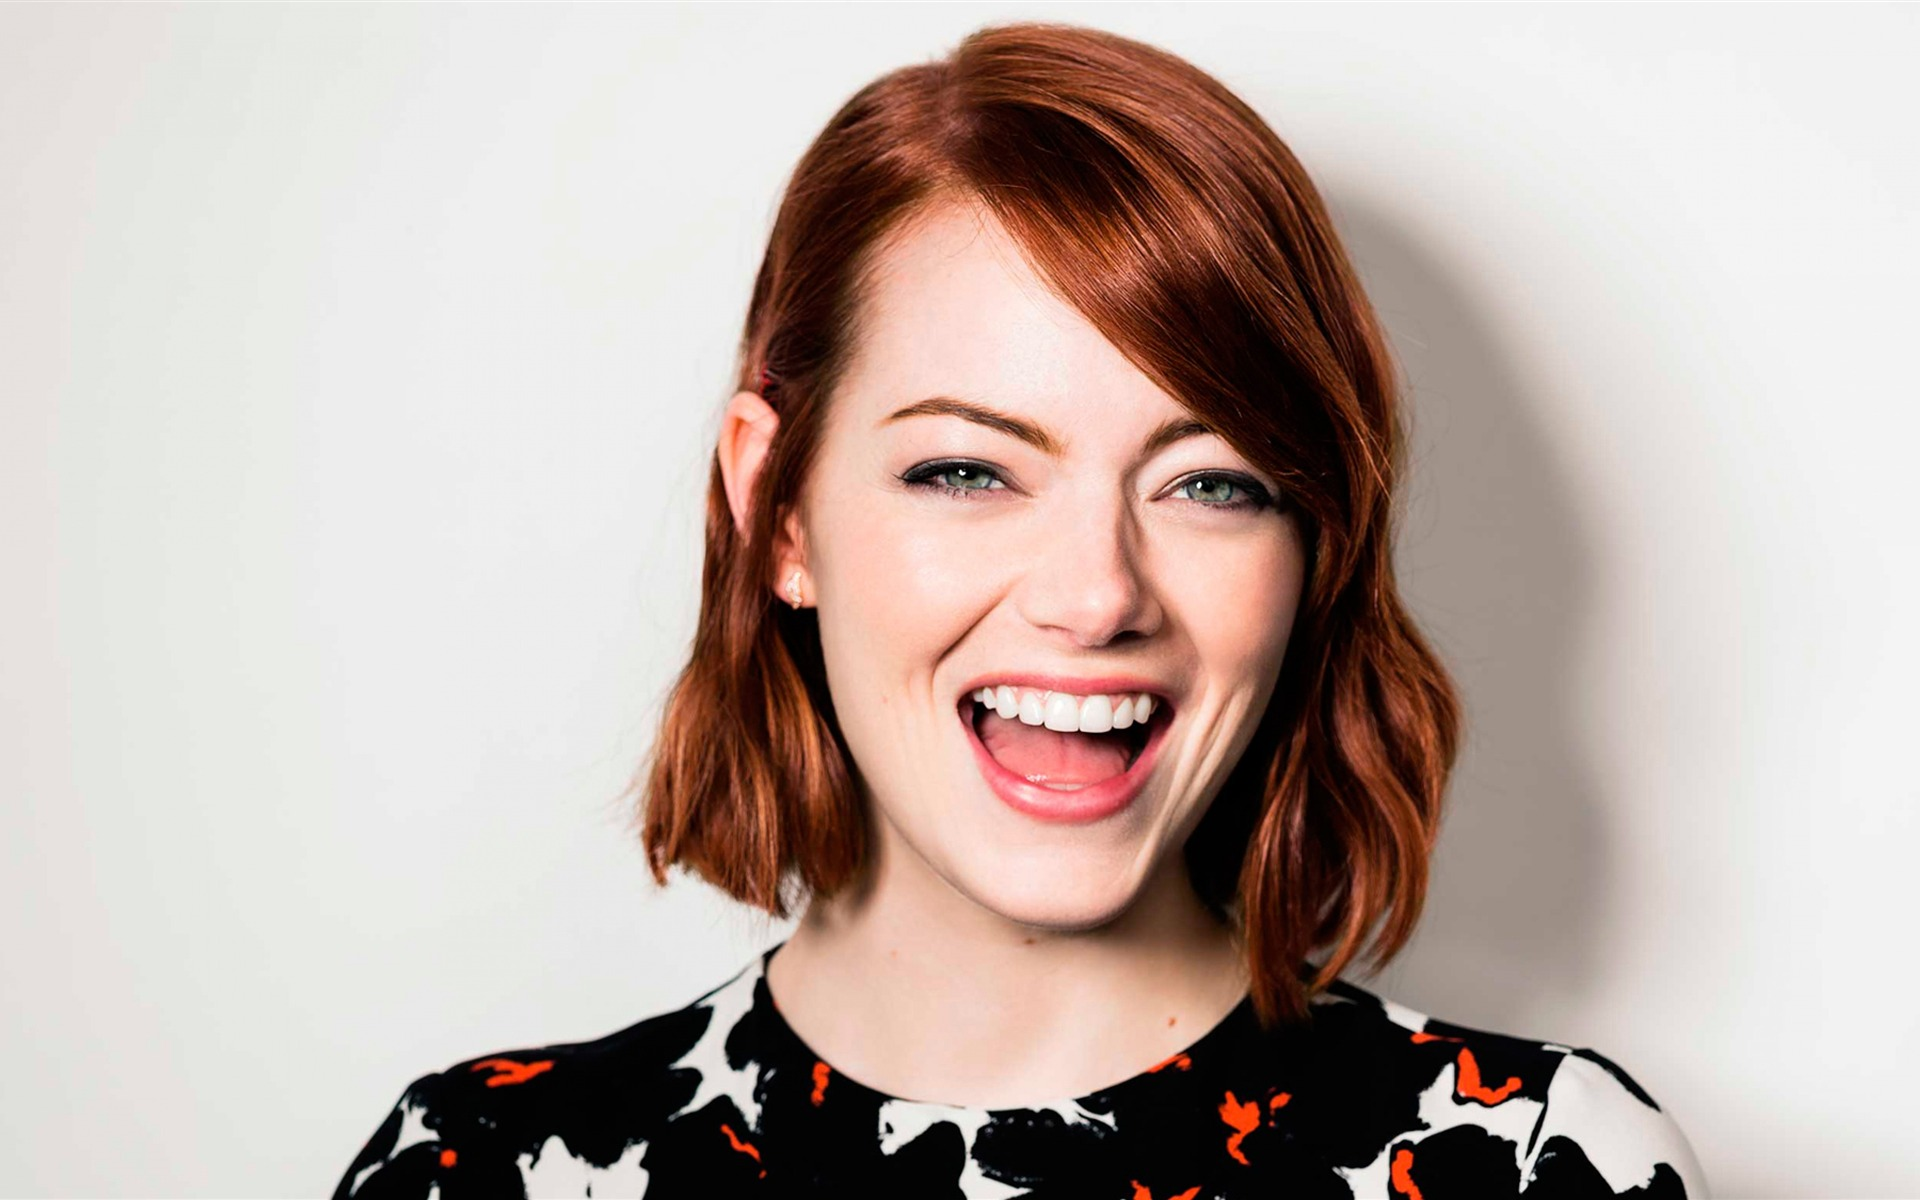 2018 Emma Stone Pretty Actor Photo - 1920x1200 wallpaper download